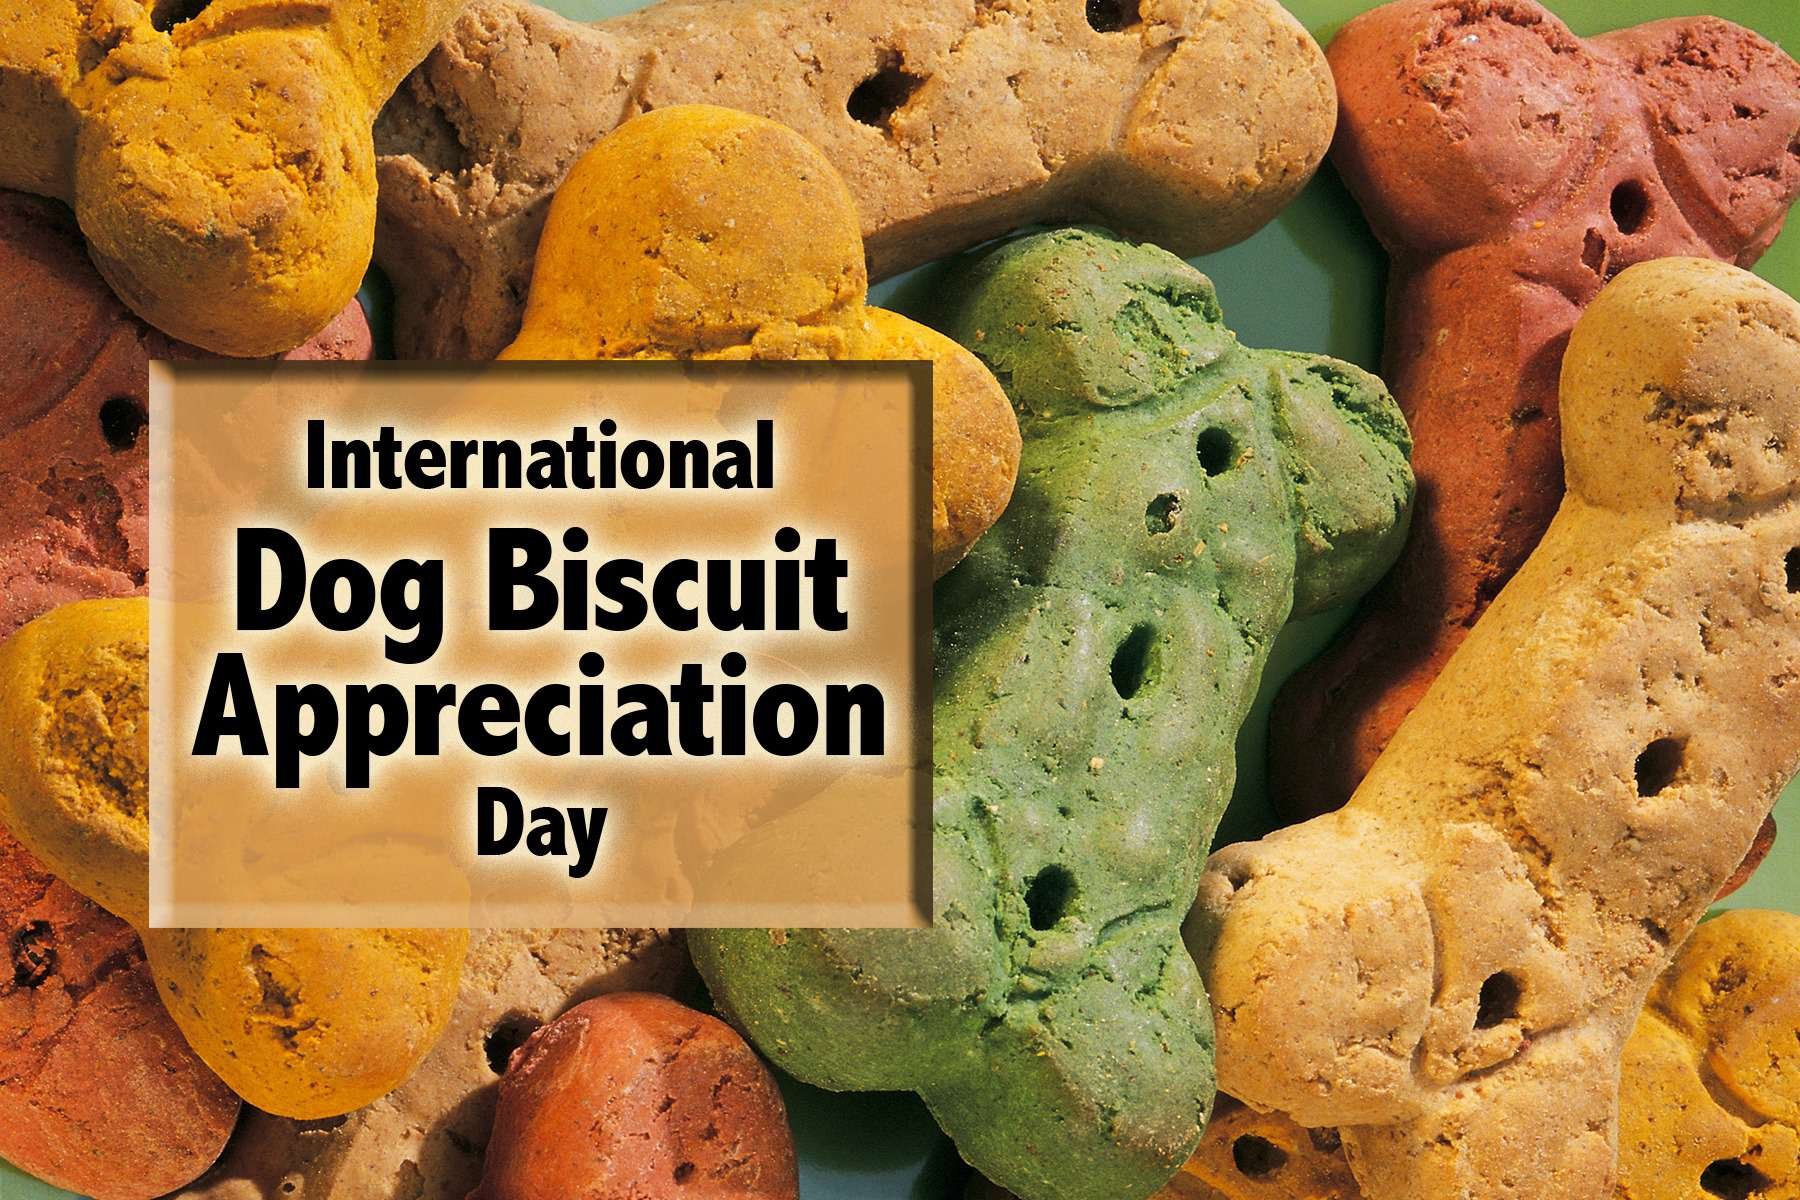 International Dog Biscuit Appreciation Day Wishes For Facebook